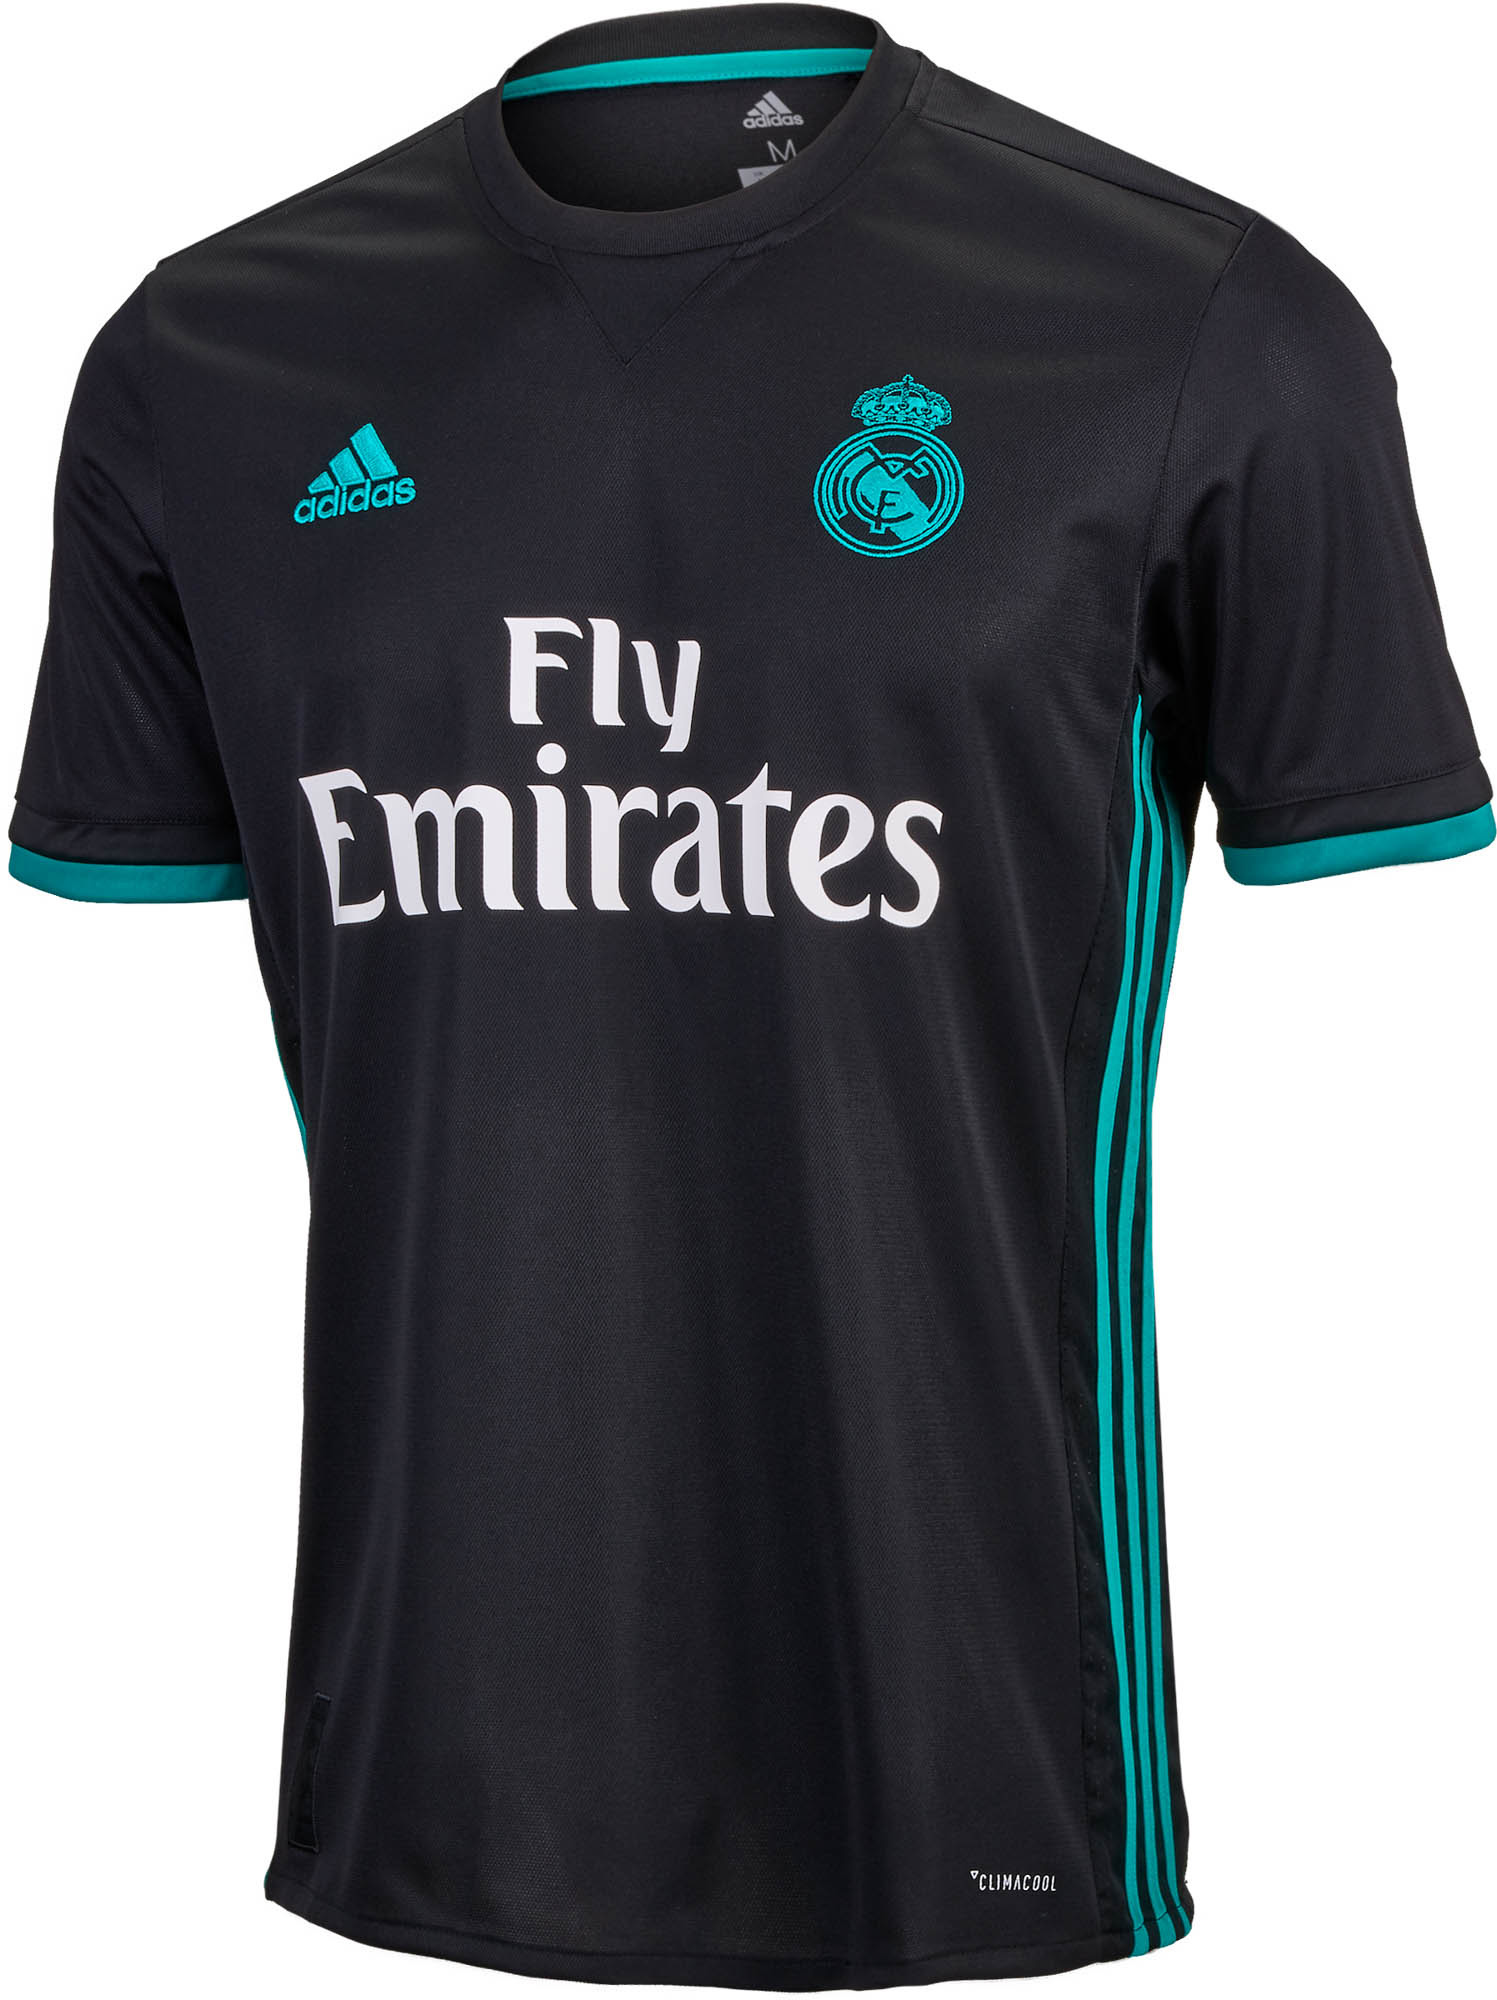 Kids 2017/18 adidas Real Madrid Away Jersey - Soccer Master - photo#45